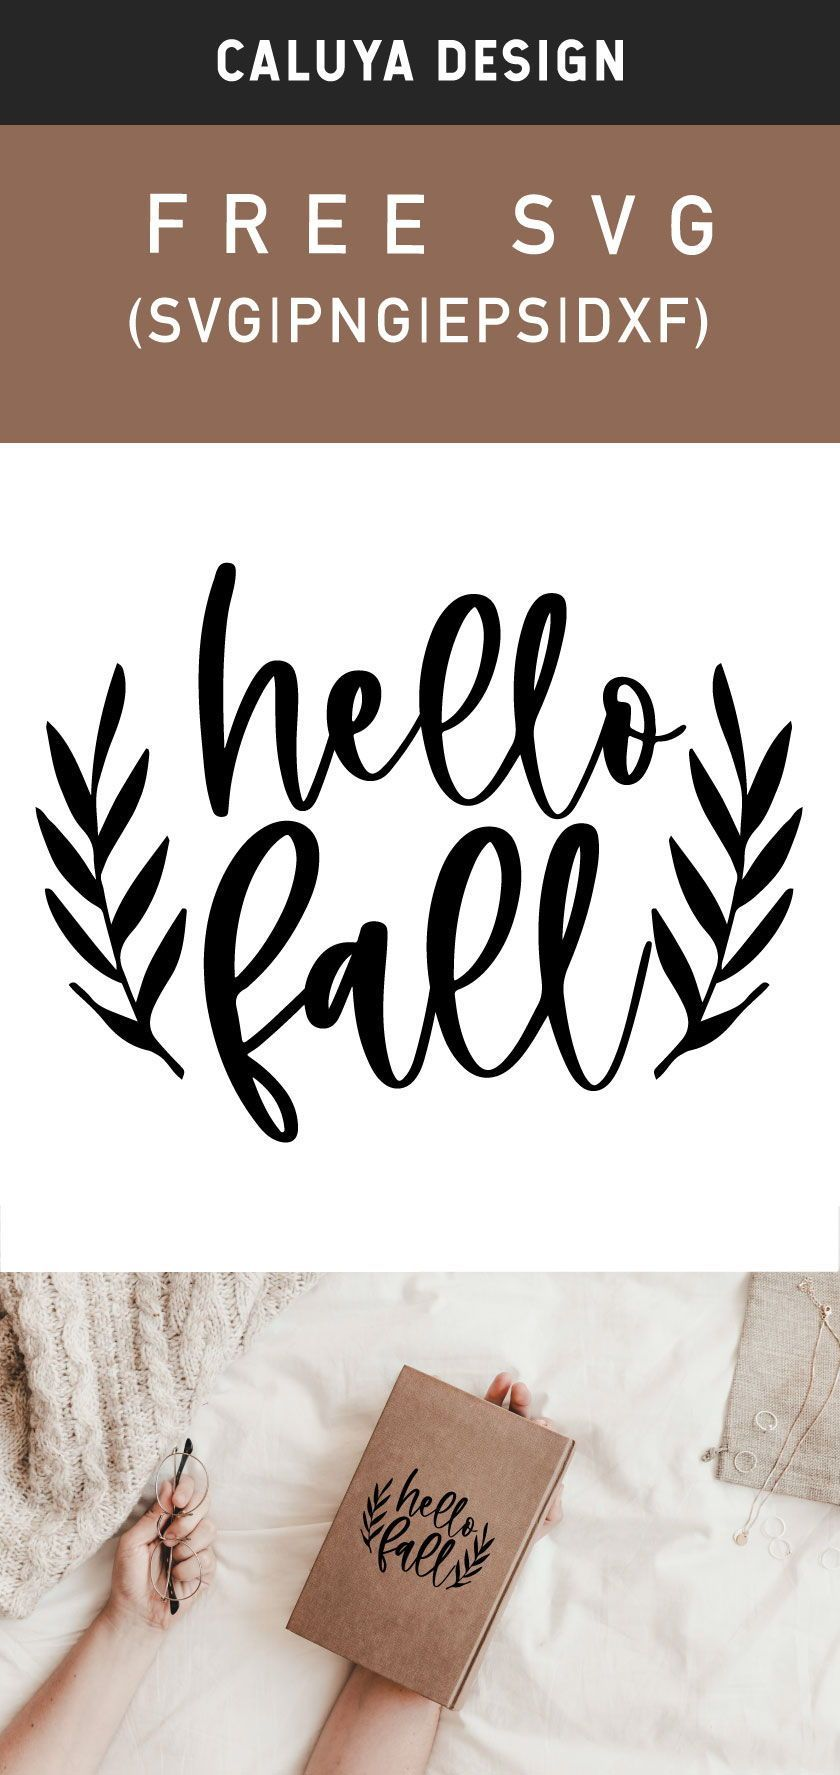 Free Hello Fall Botanical Svg Png Eps Dxf By Caluya Design In 2020 Hello Autumn Free Printable Clip Art Free Fall Printables